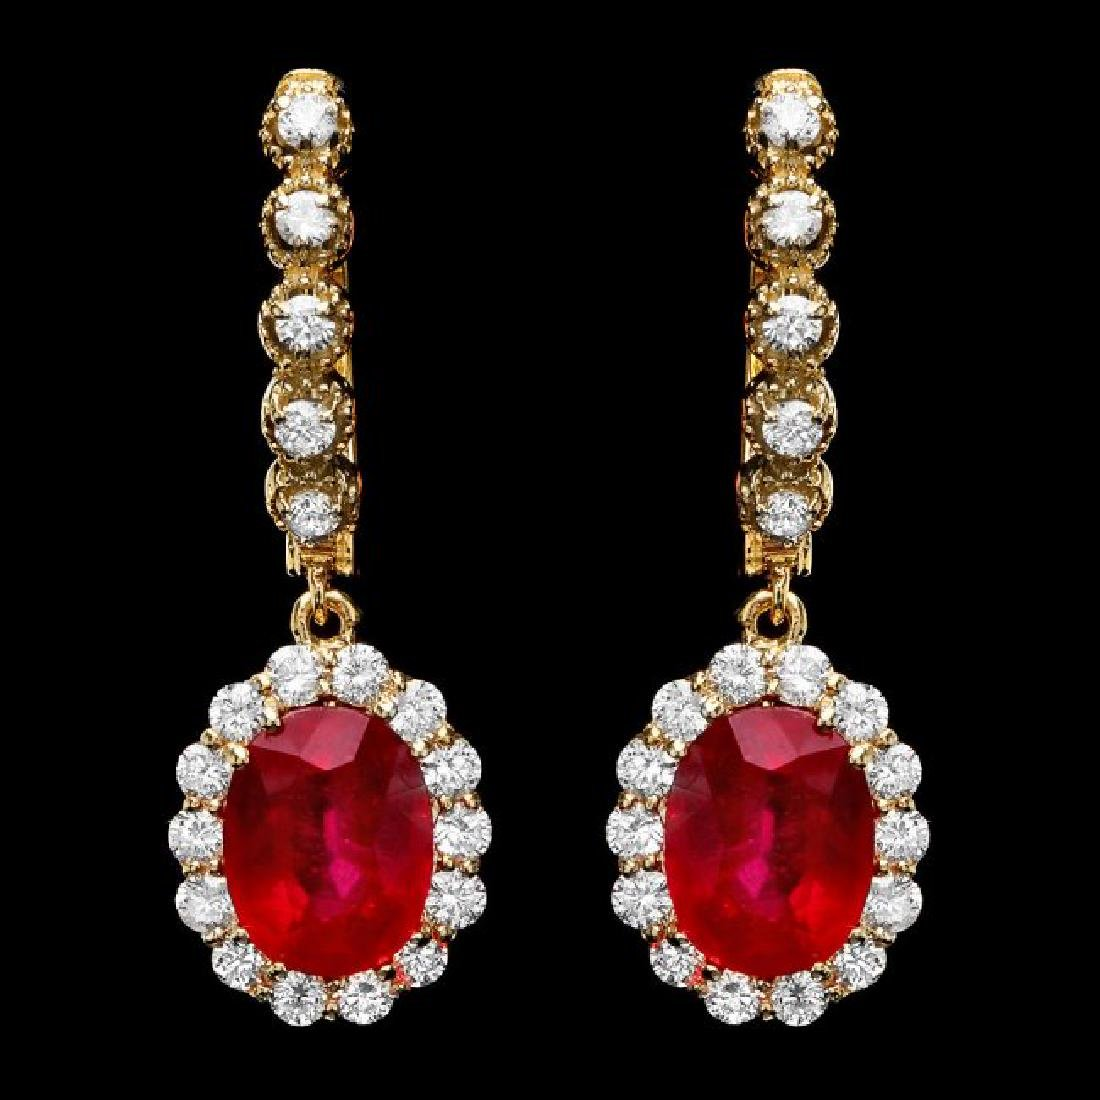 14k Gold 8.00ct Ruby 1.35ct Diamond Earrings